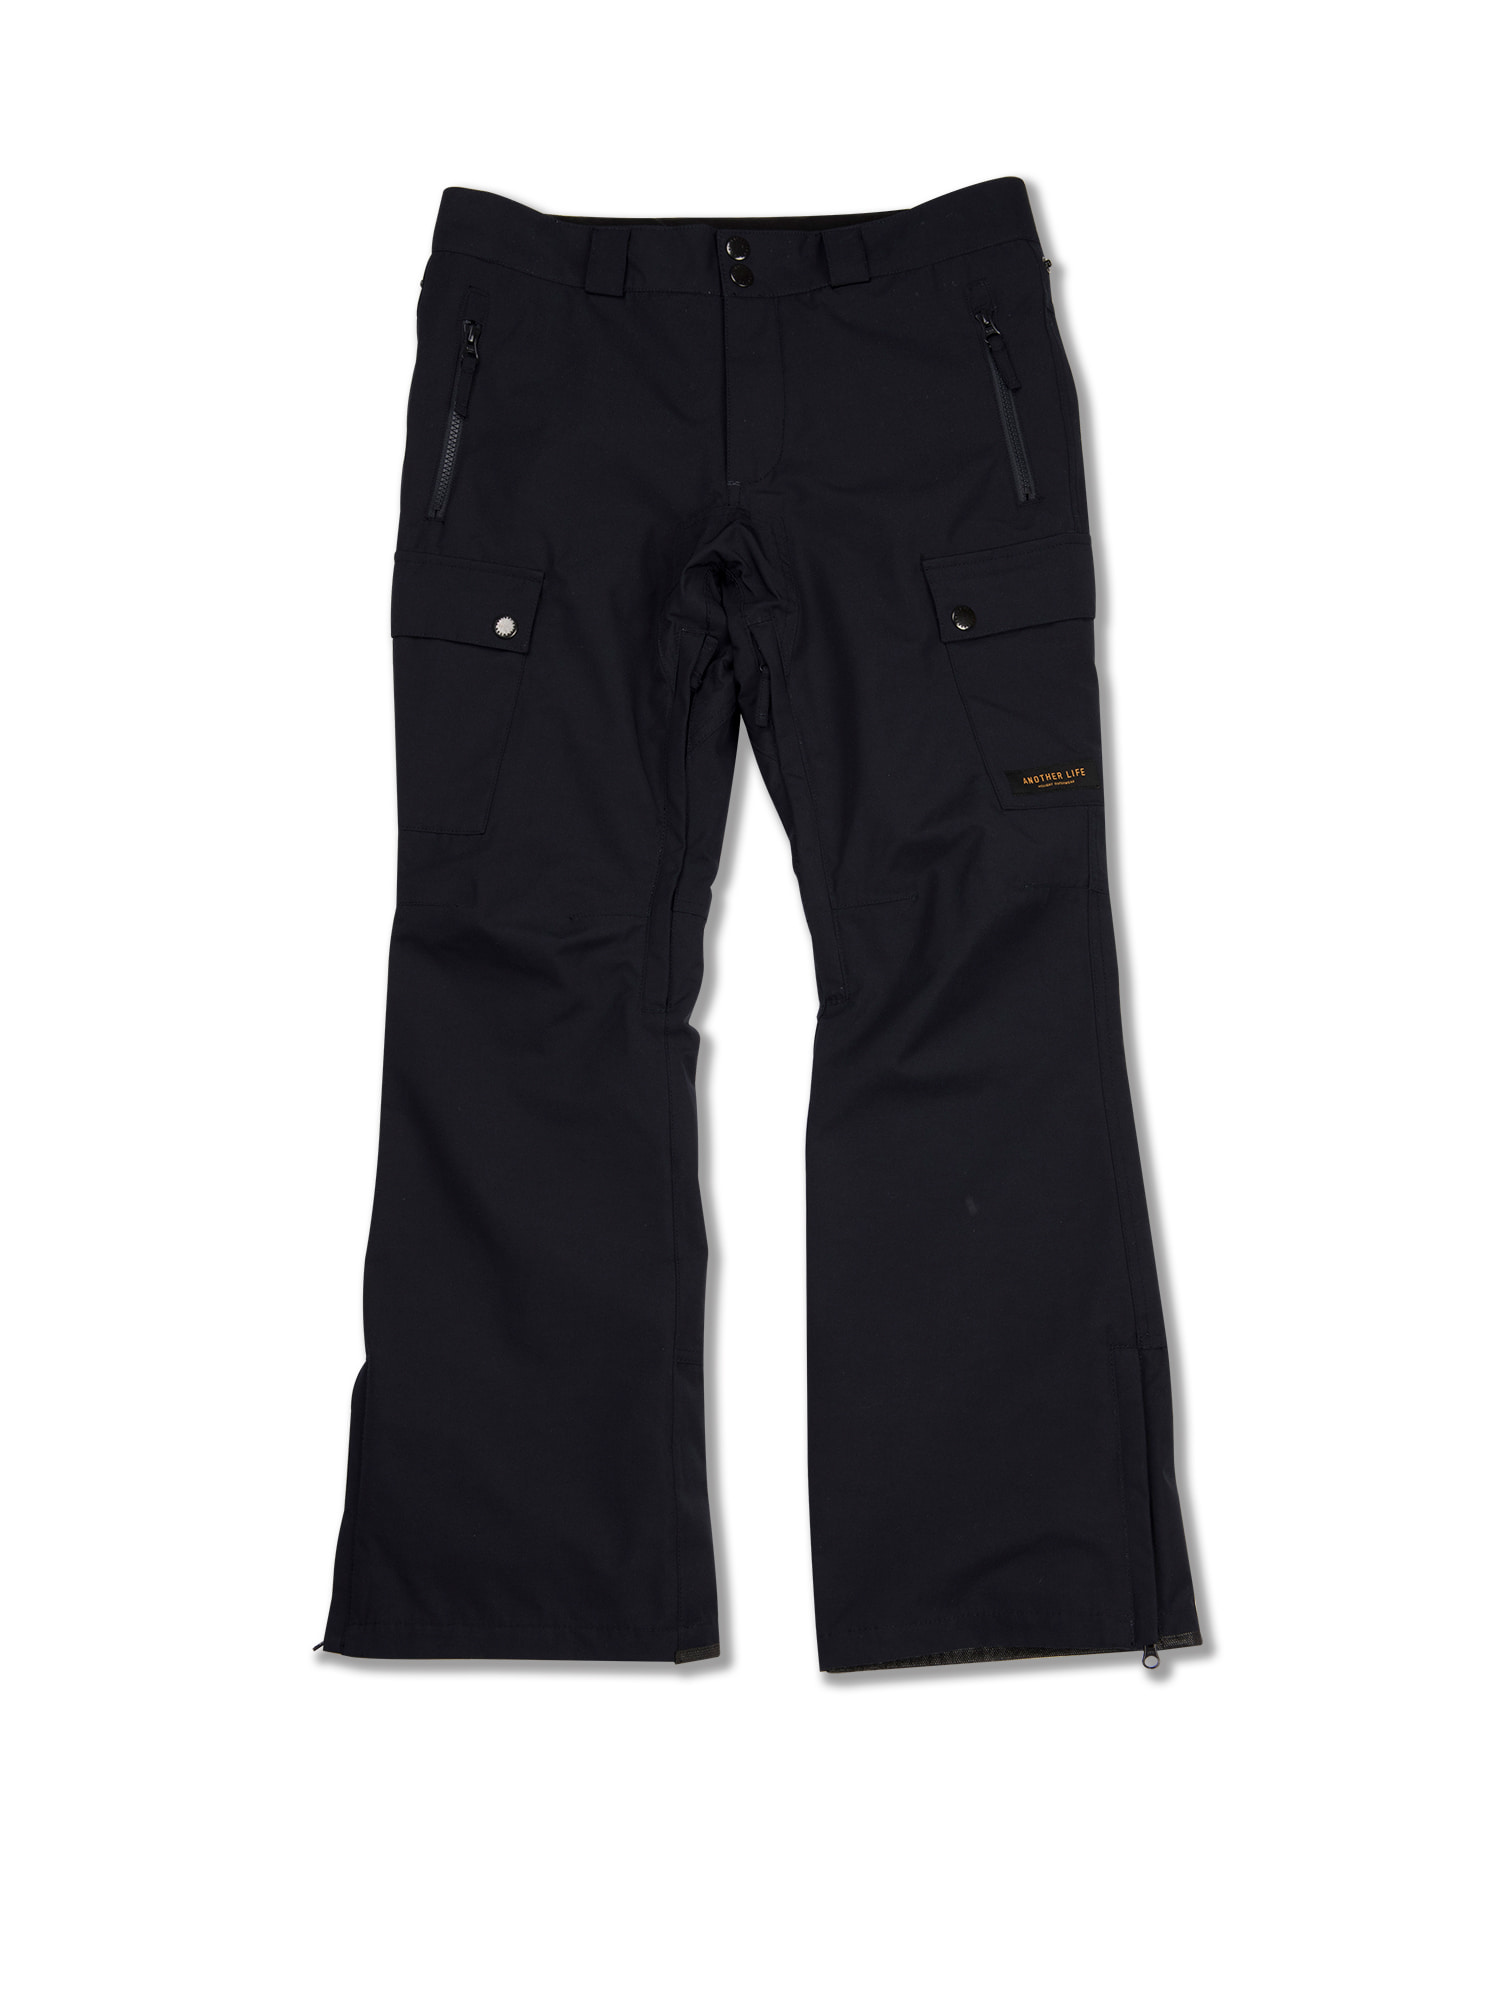 CHATTER pants - navy